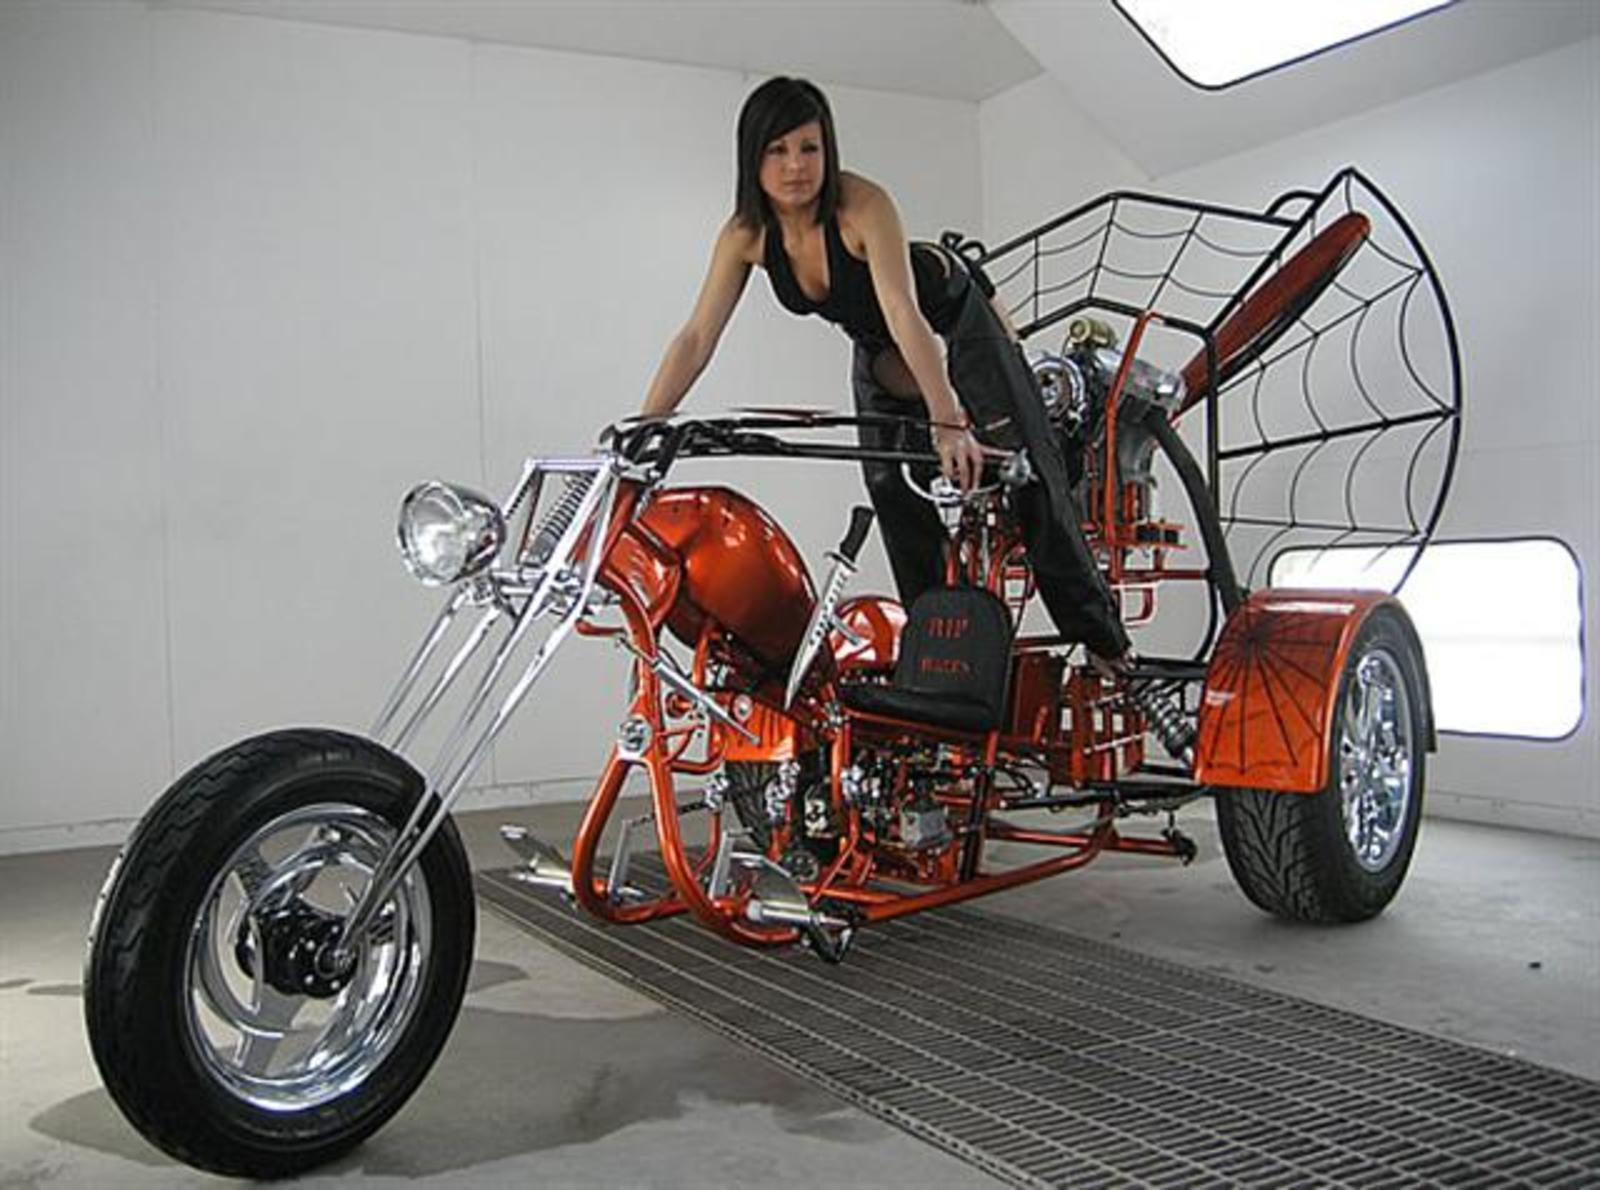 Maxx Biker Top Speed Crown Easy Blend Multi Mini Chopper The Airboat Inspired Trike